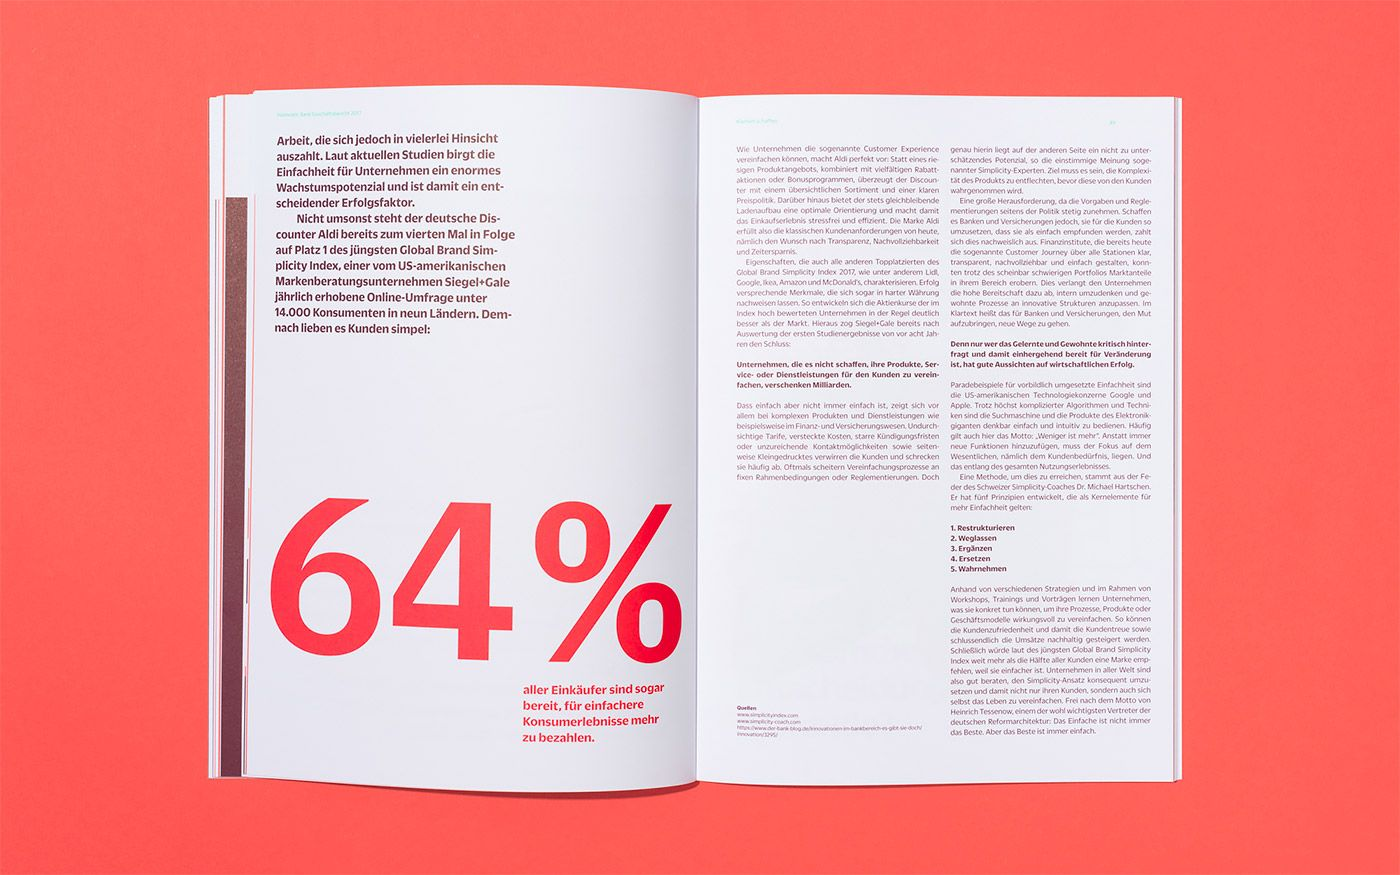 Hanseatic Bank Annual Report Design By Eiga Daily Design Inspiration For Creatives Inspiration Grid In 2020 Annual Report Layout Annual Report Design Annual Report